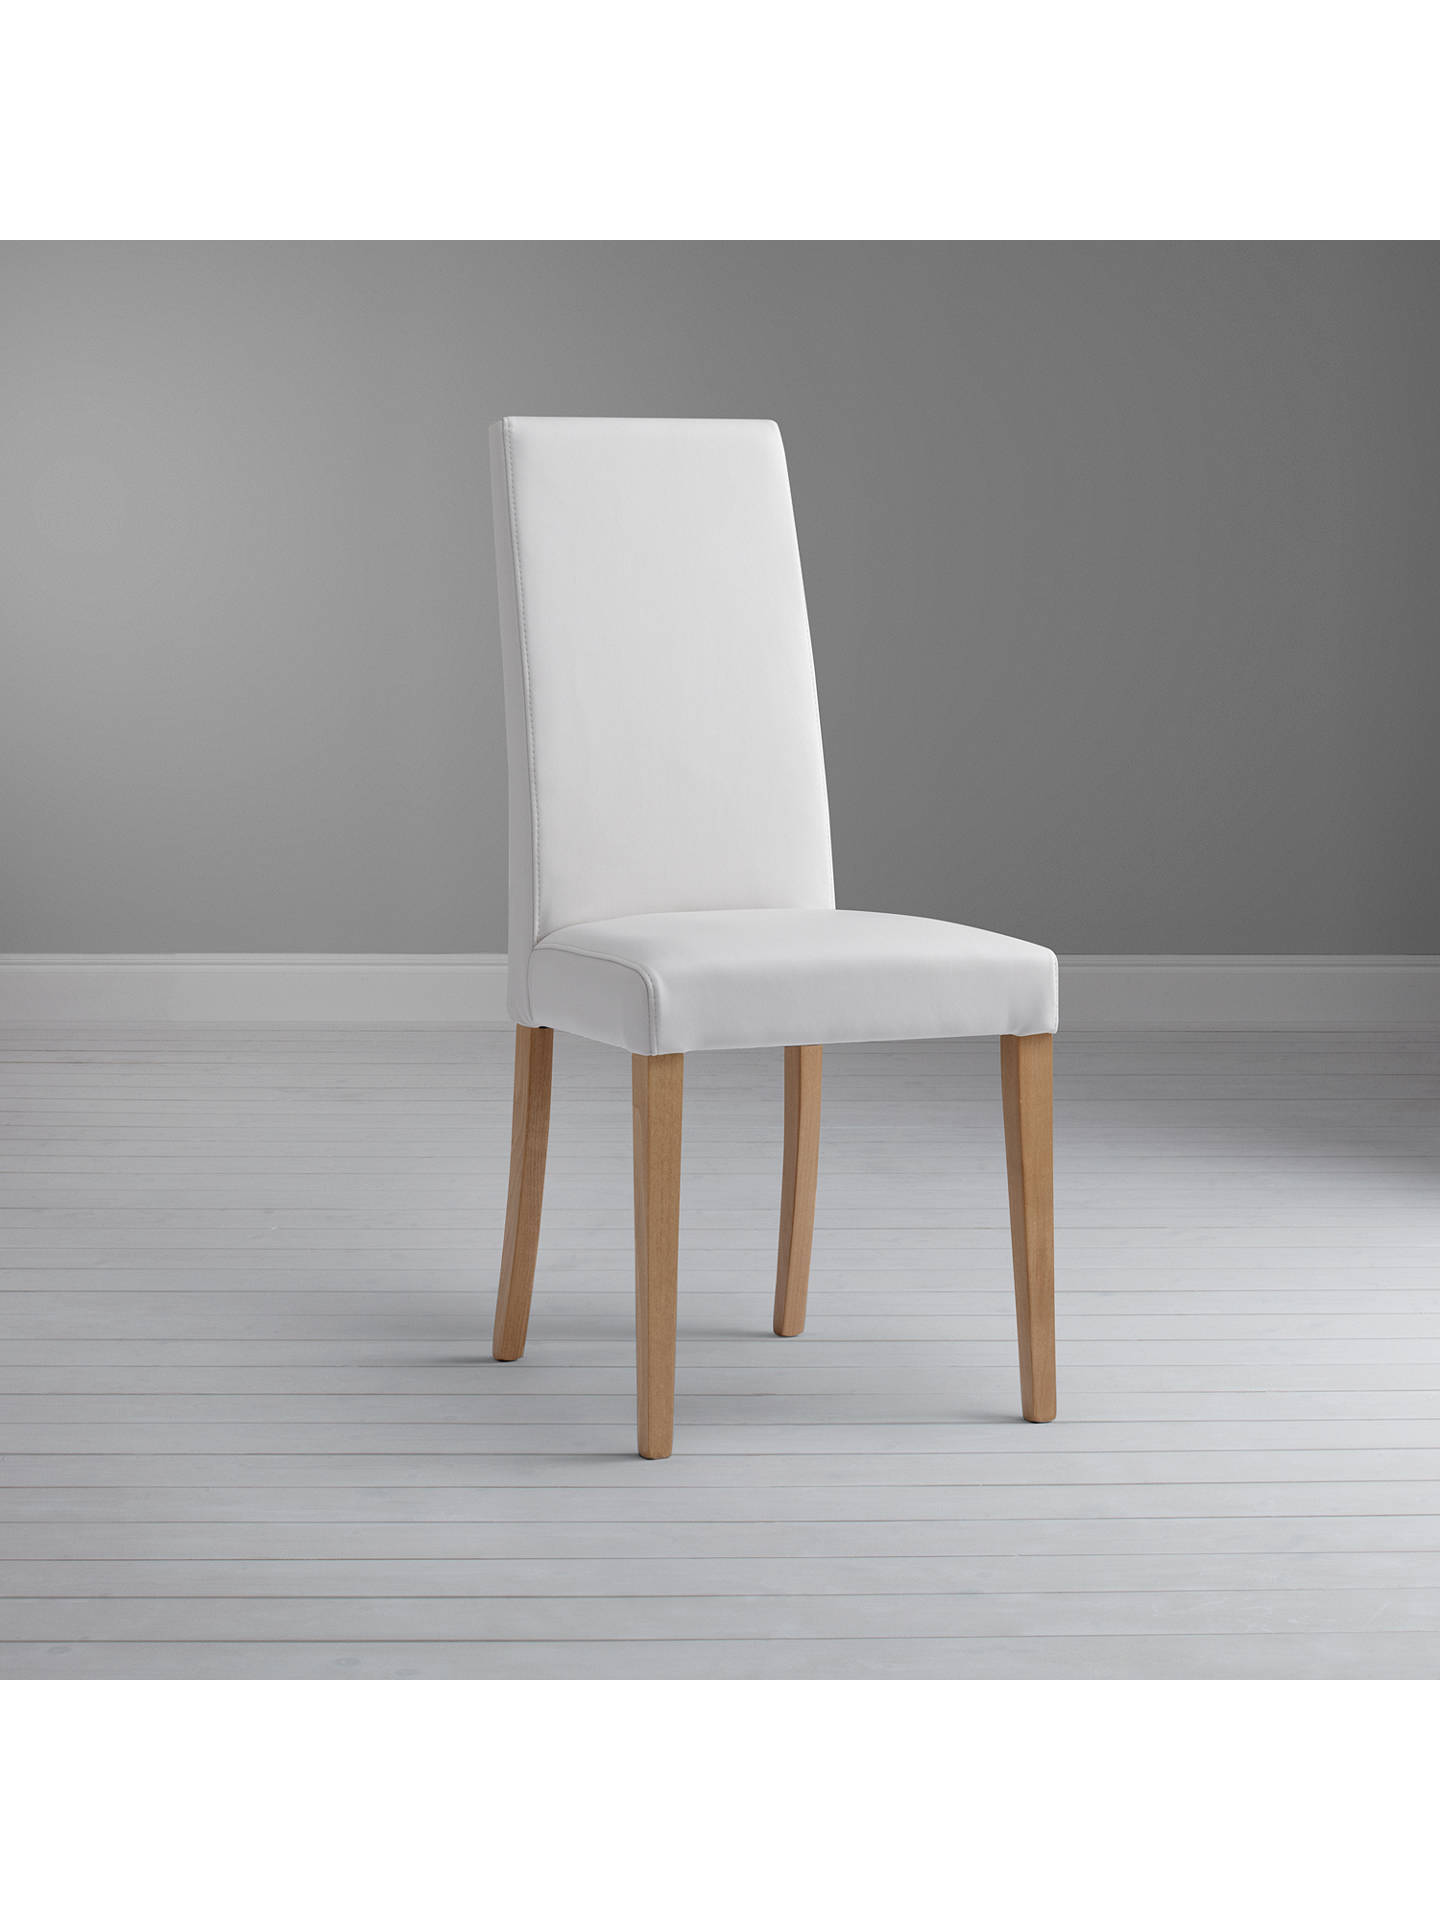 Buy John Lewis & Partners Lydia Leather Effect Dining Chair, FSC-Certified (Beech), Chalk Online at johnlewis.com